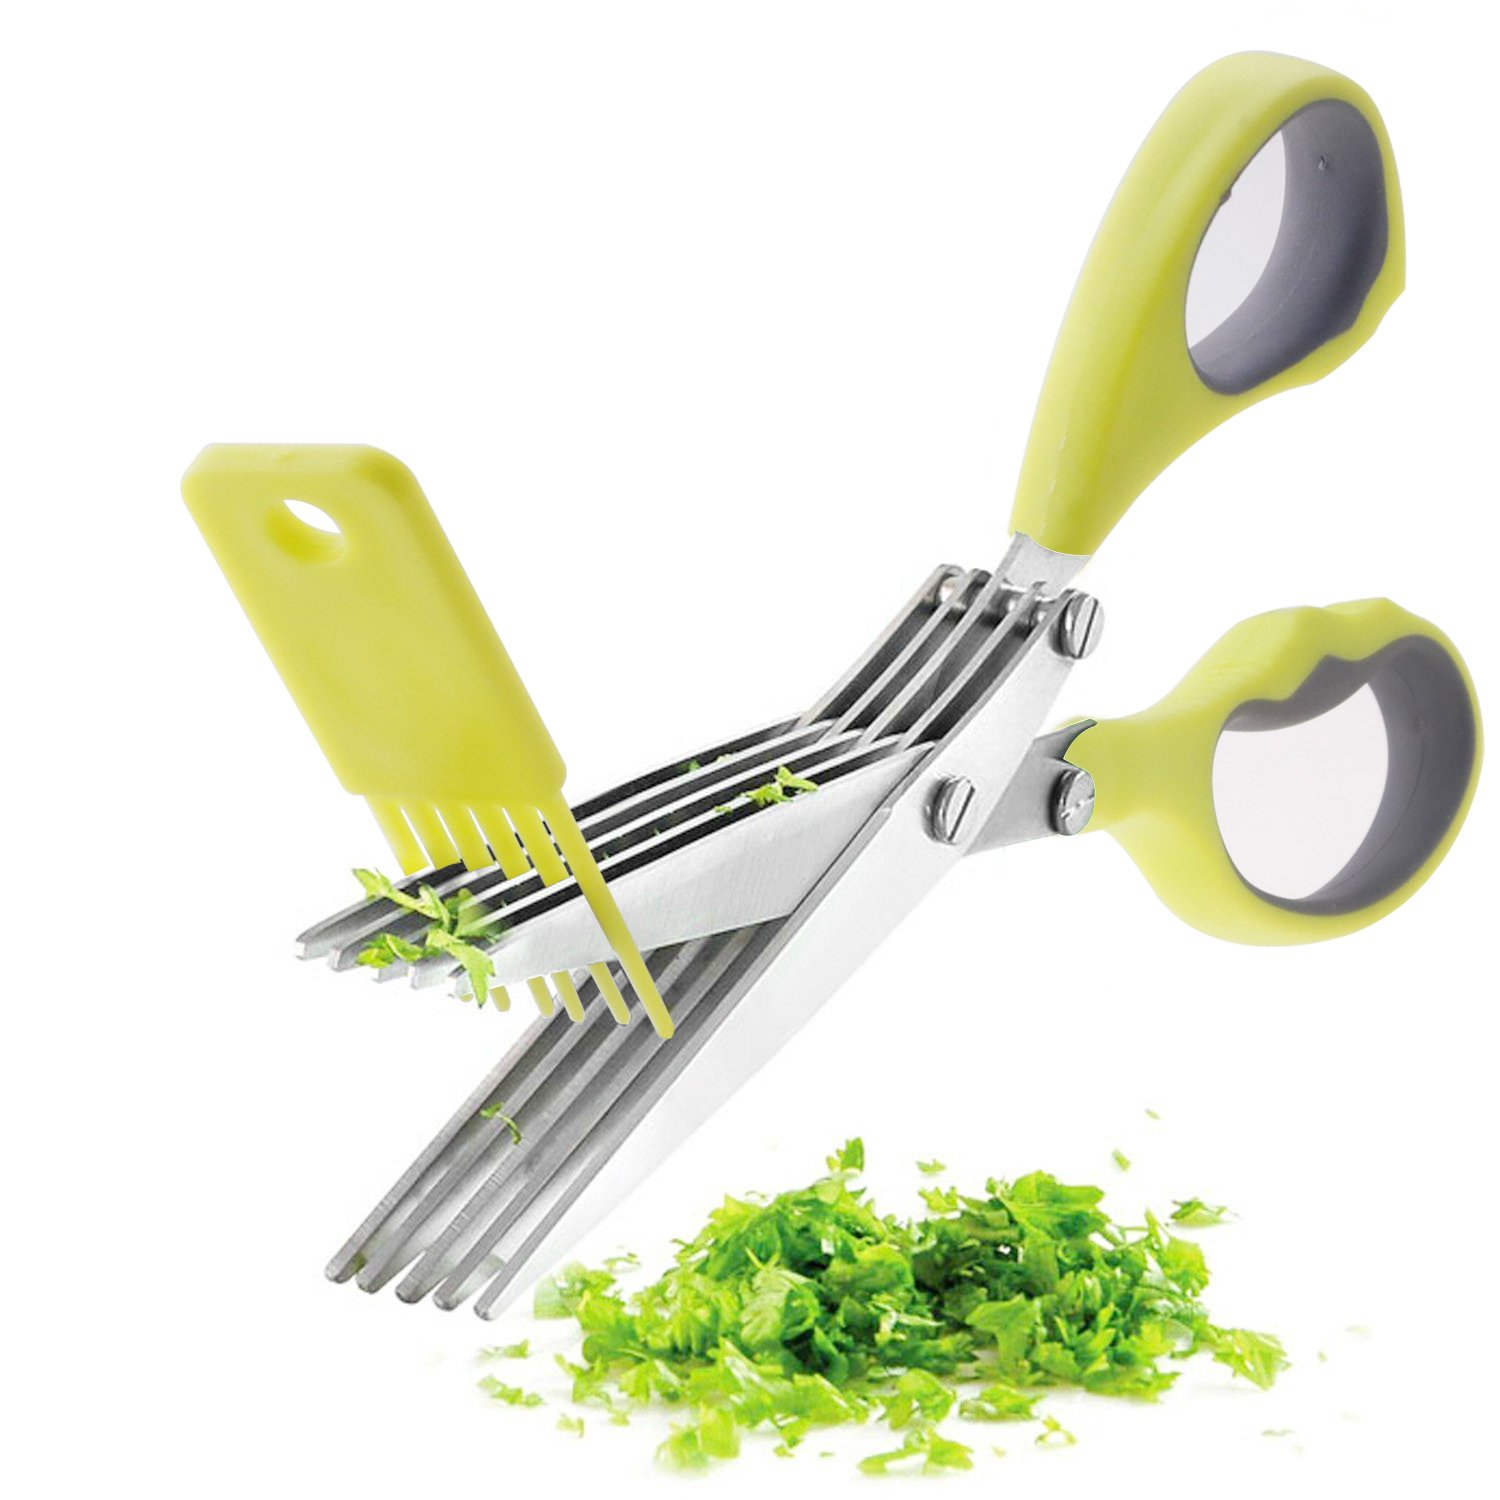 Stainless Steel Herb Scissors - Multipurpose Kitchen Herb Scissors with 5 Blade, Ergonomic Design Rubber Handles Safe Kitchen Herb Cutter Shears for Kelp, Nori, Chives, Mint, Leeks, Parsley CMZD180308030801